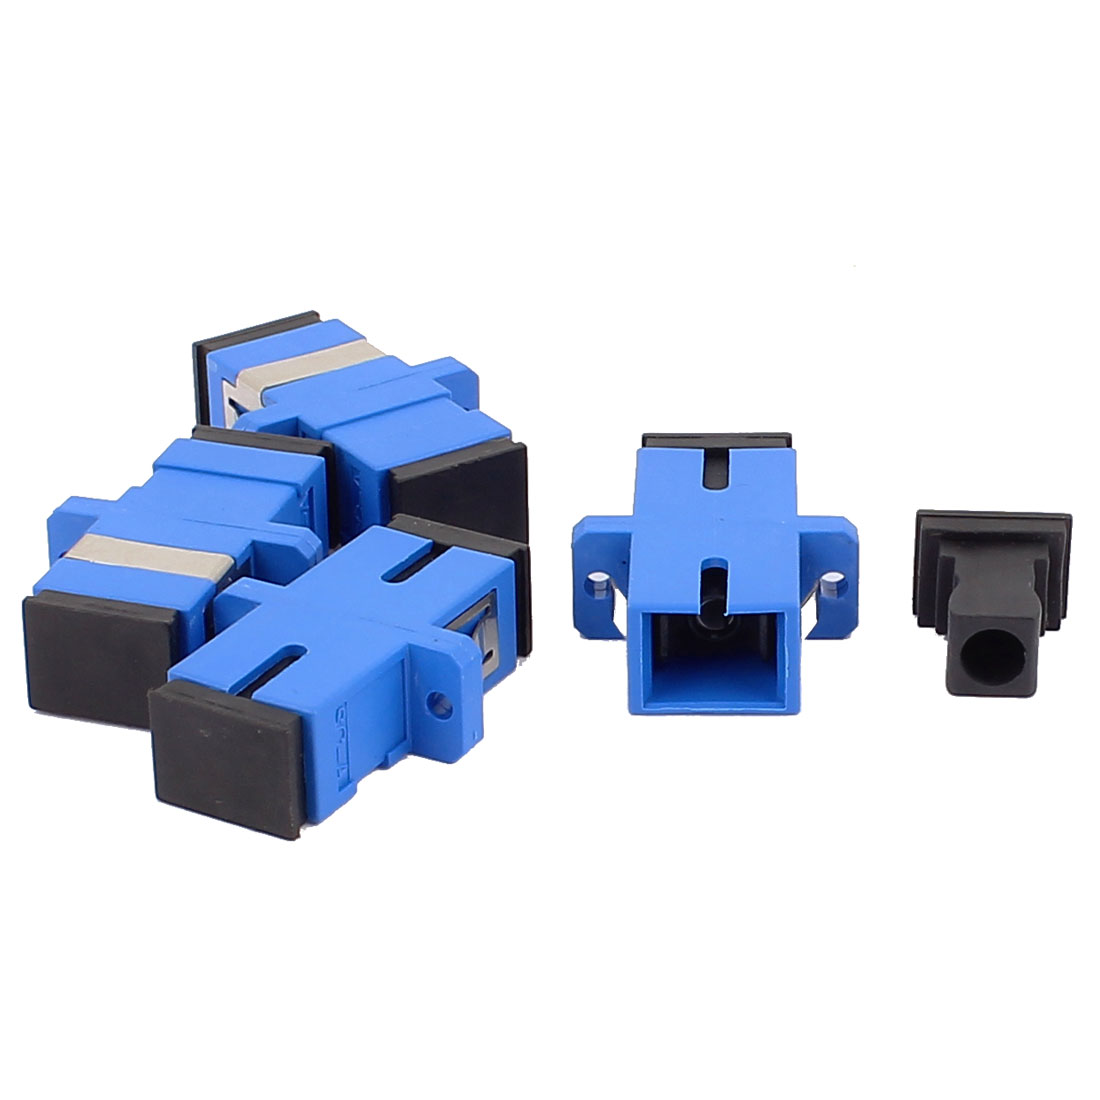 4 Pcs Multi-mode SC-SC UPC Simplex Fibre Couplers Flange Adapters Optical Fiber Connectors